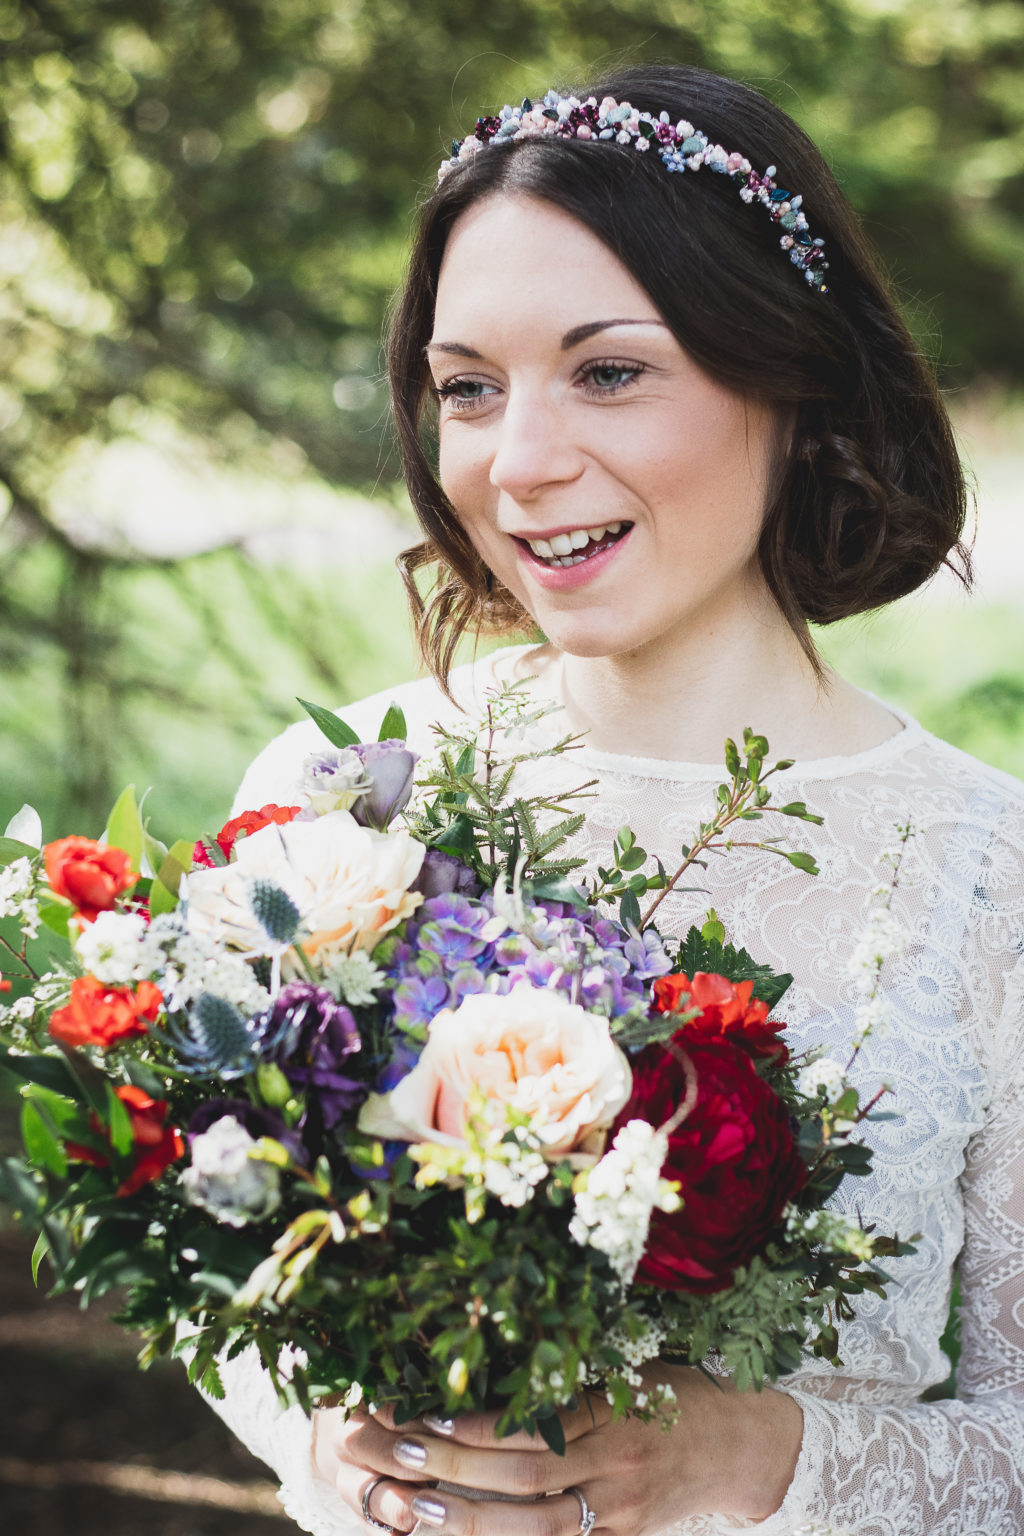 Whimsical Woodland Wedding With Ethical Styling and Accessories